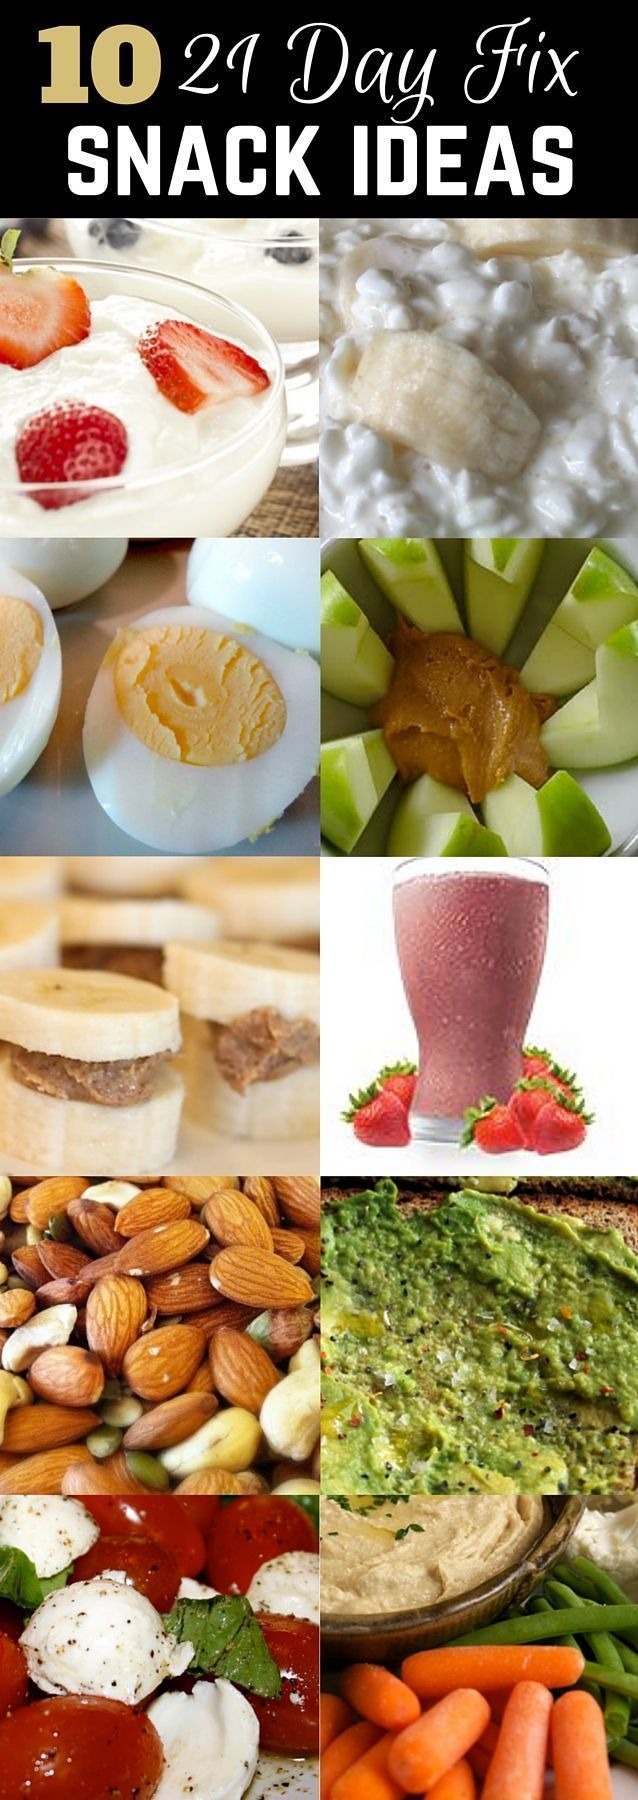 Check out this article for 10 easy and QUICK 21 Day Fix Snack ideas | 21 day fix | 21 day fix extreme | beachbody coach | Keri Mignano